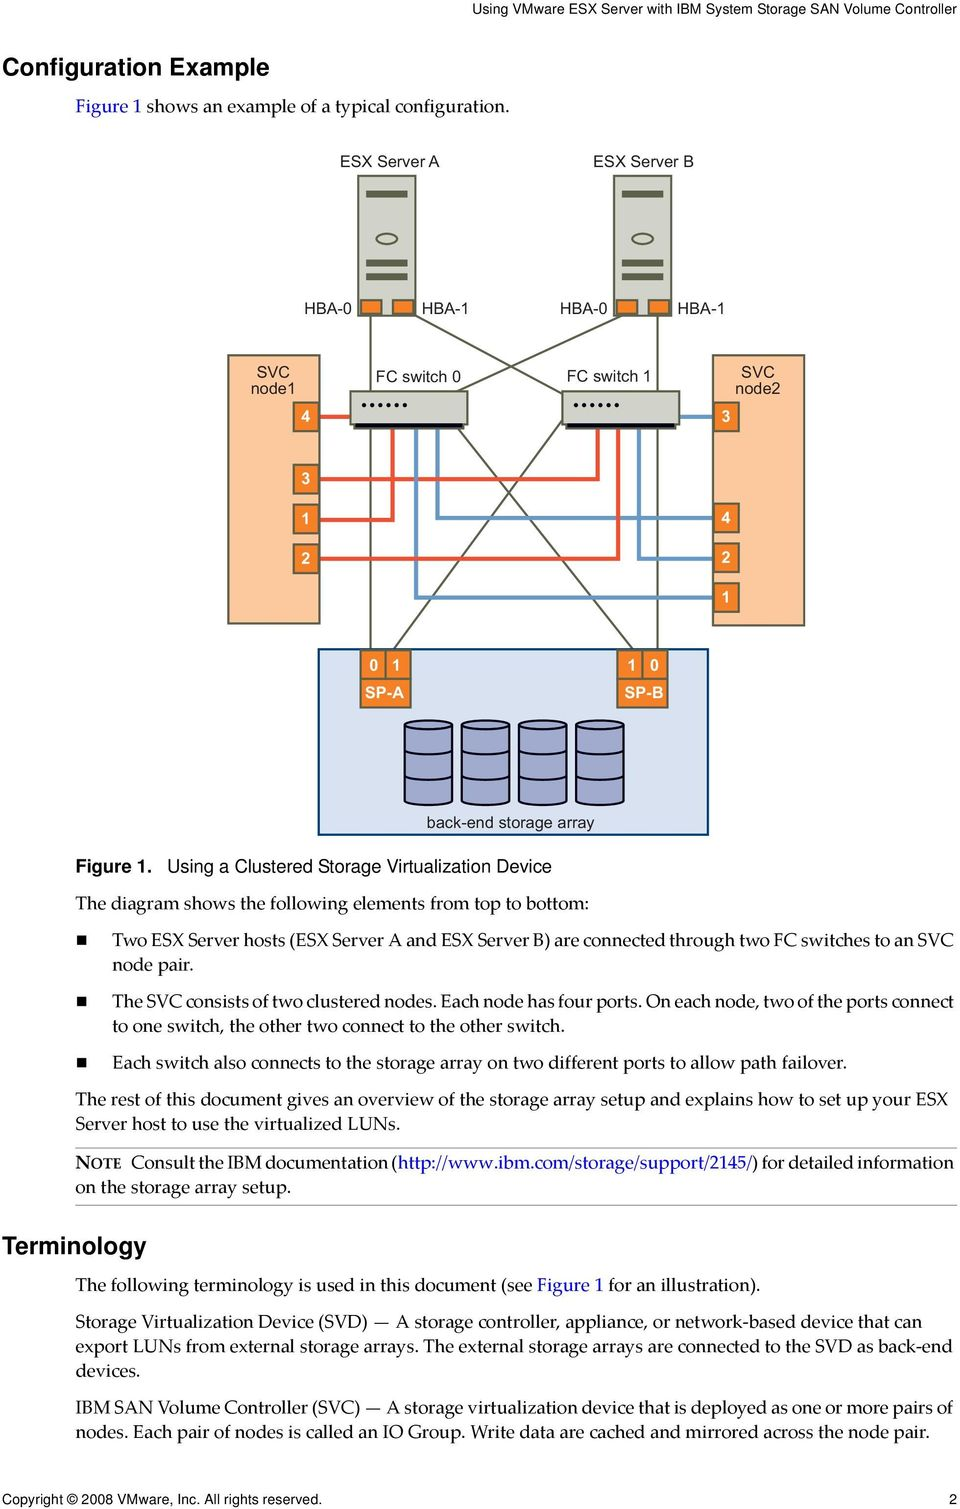 Using a Clustered Storage Virtualization Device The diagram shows the following elements from top to bottom: Two ESX Server hosts (ESX Server A and ESX Server B) are connected through two FC switches